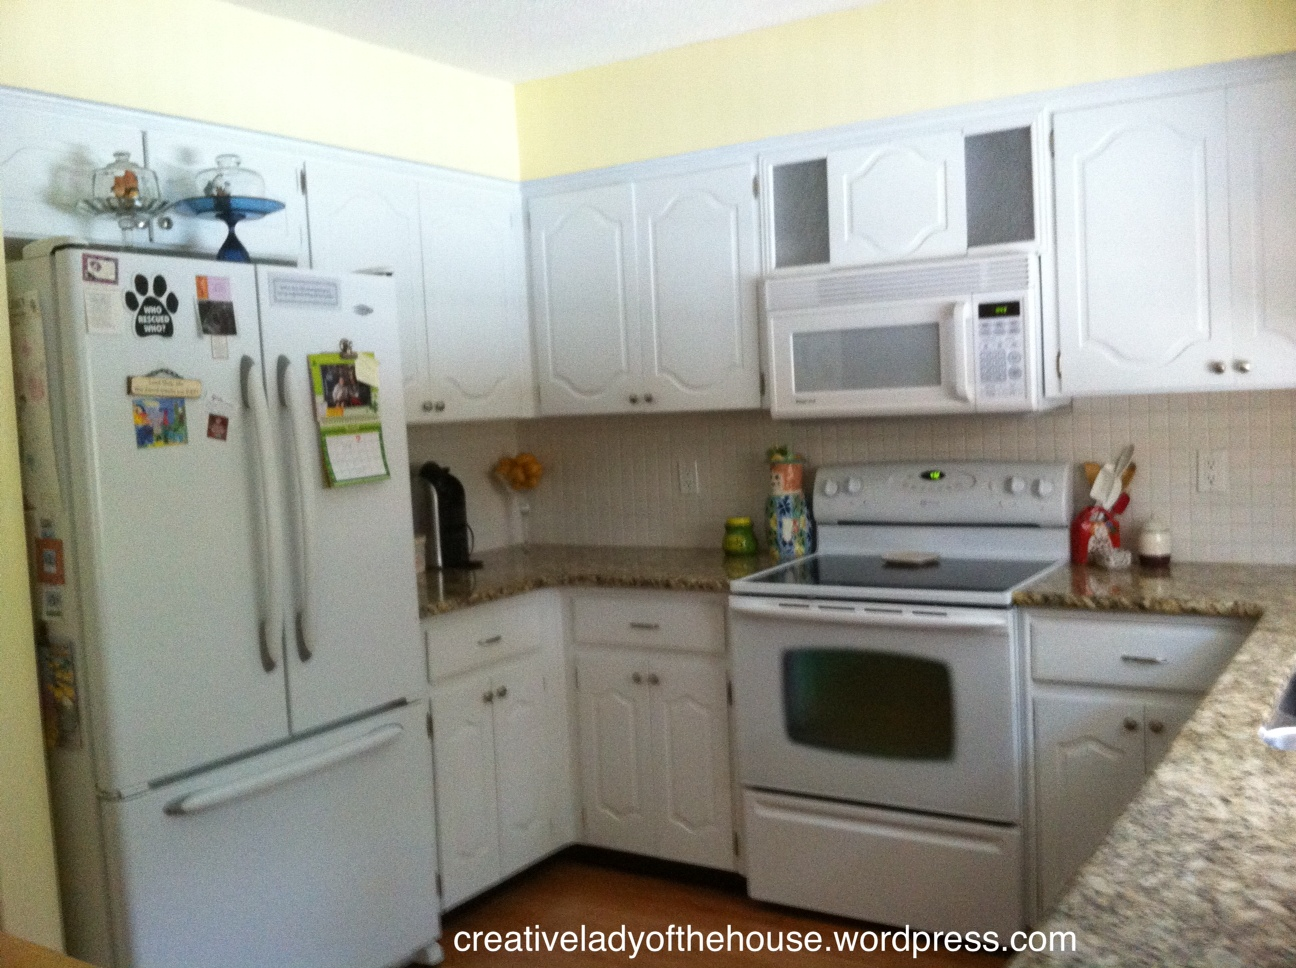 white fridge in kitchen. we just painted the cabinets white fridge in kitchen